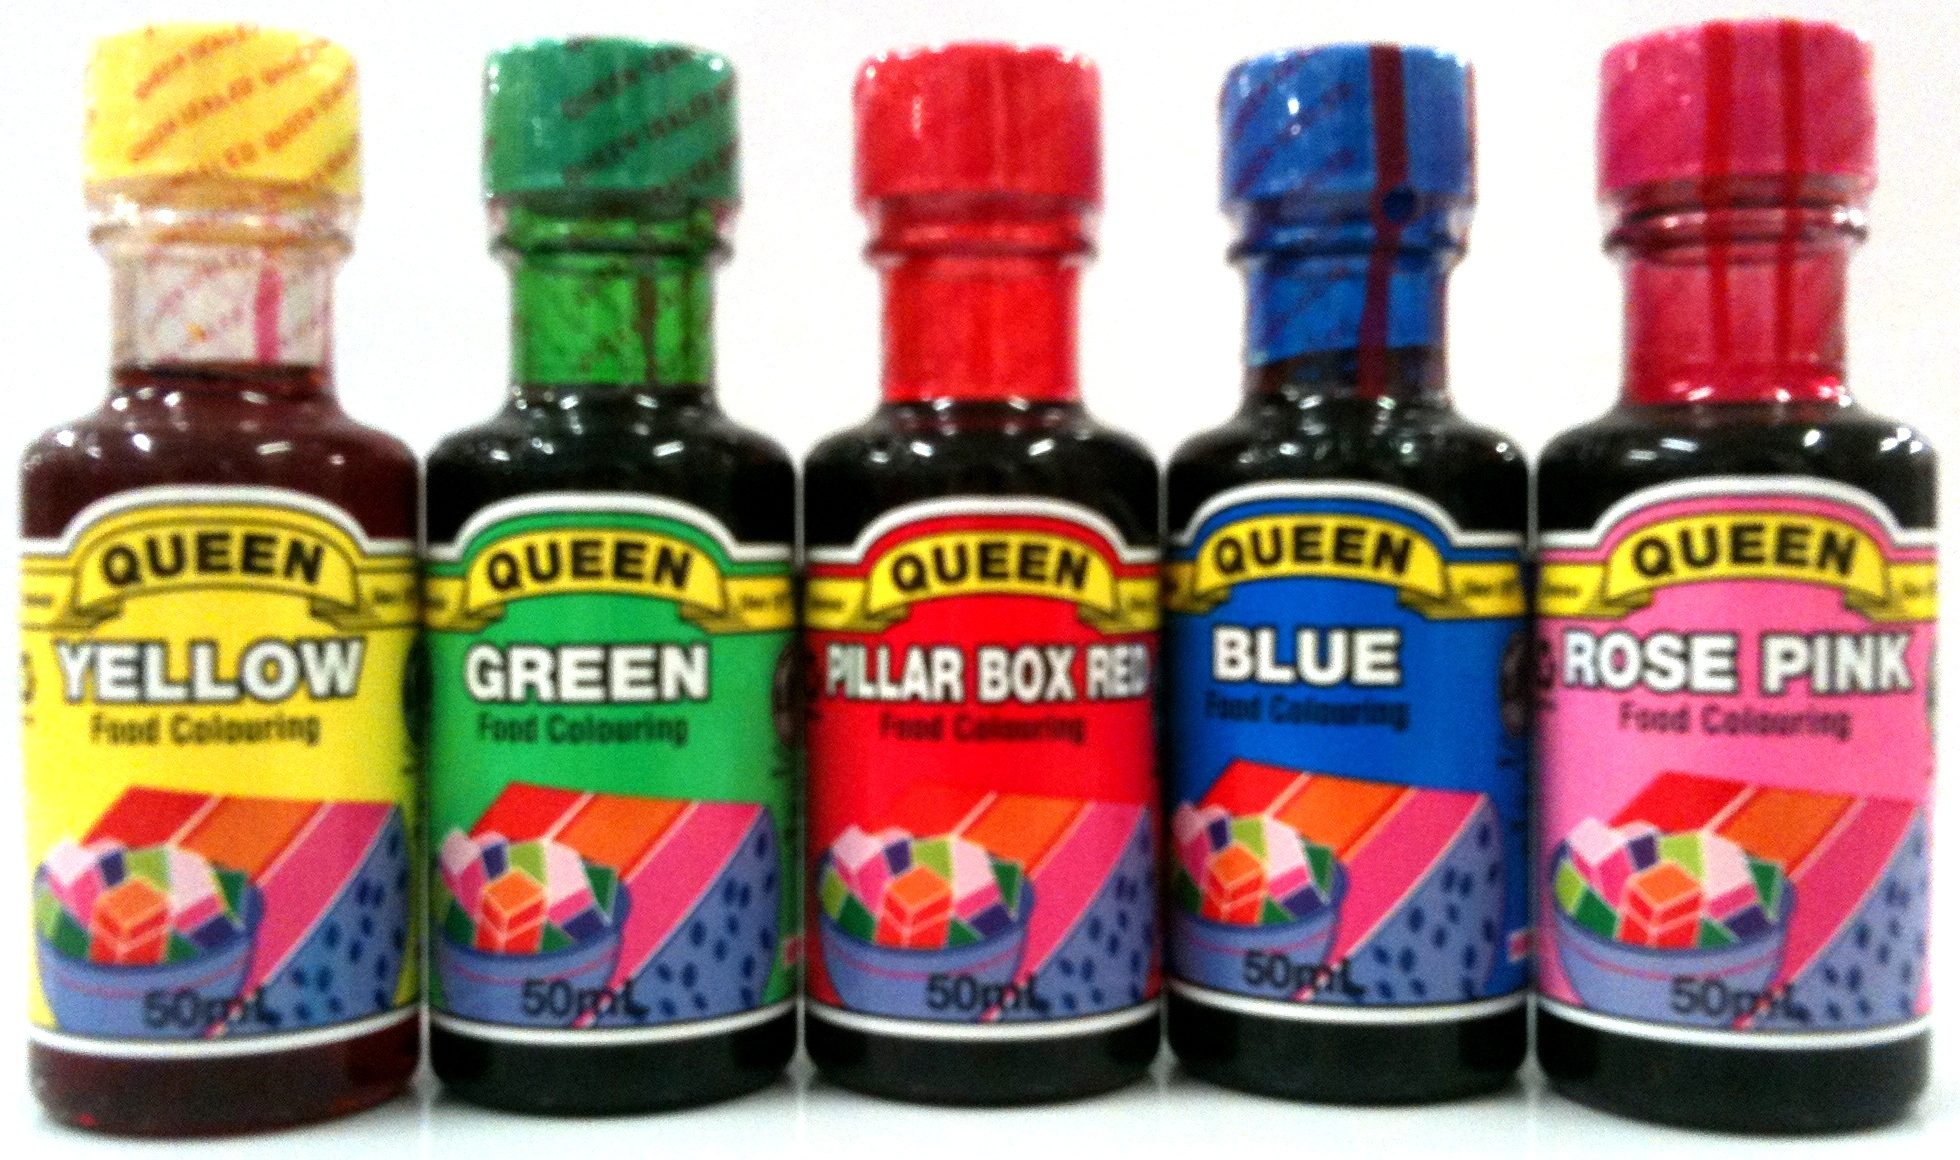 Food Colouring Queen brand - Port Lincoln Food Warehouse